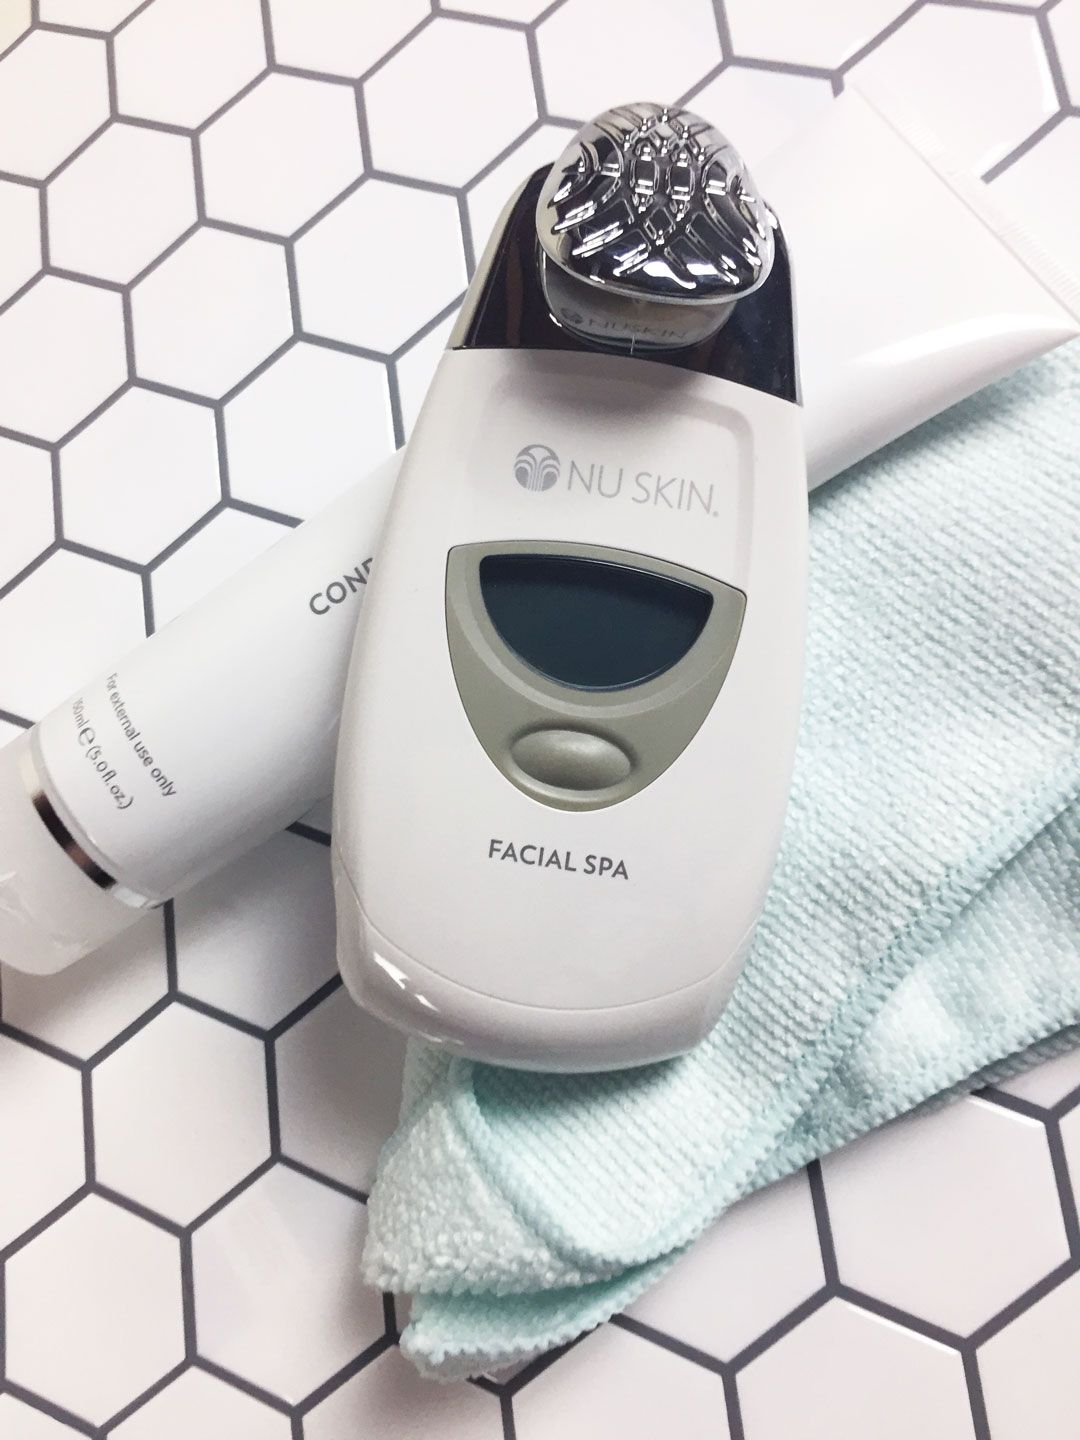 Ageloc galvanic spa system ii white galvanic spa spa and nu skin